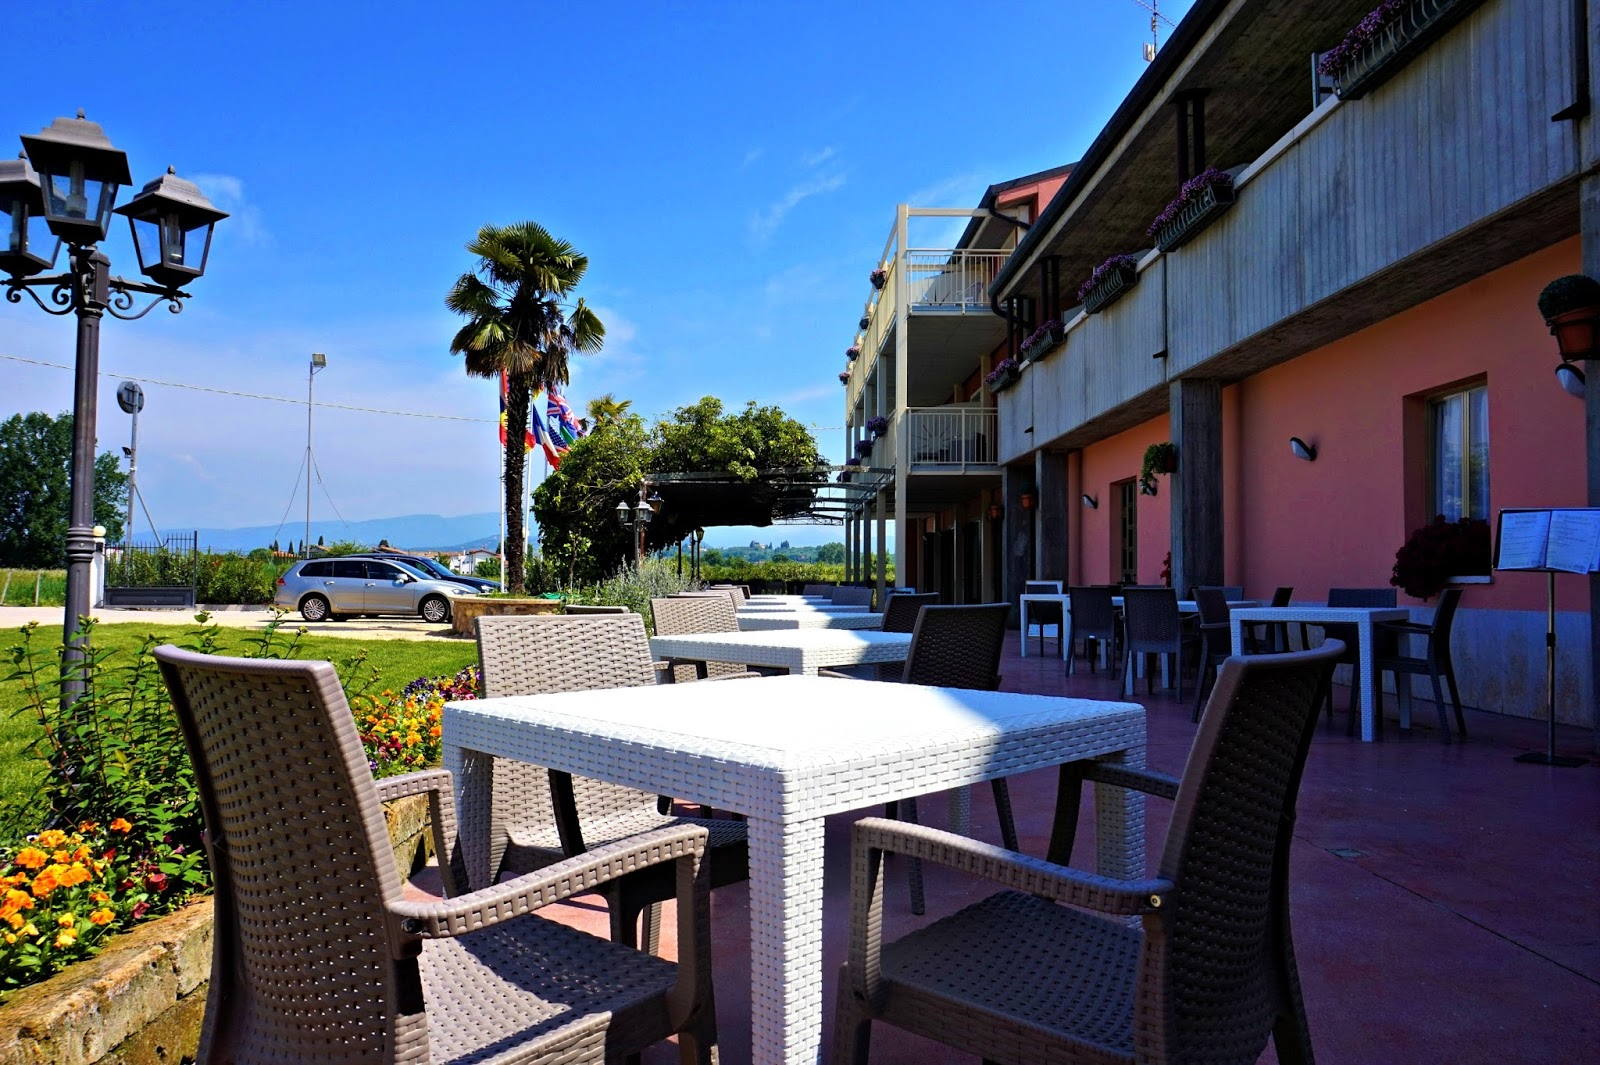 bella lazise hotel review